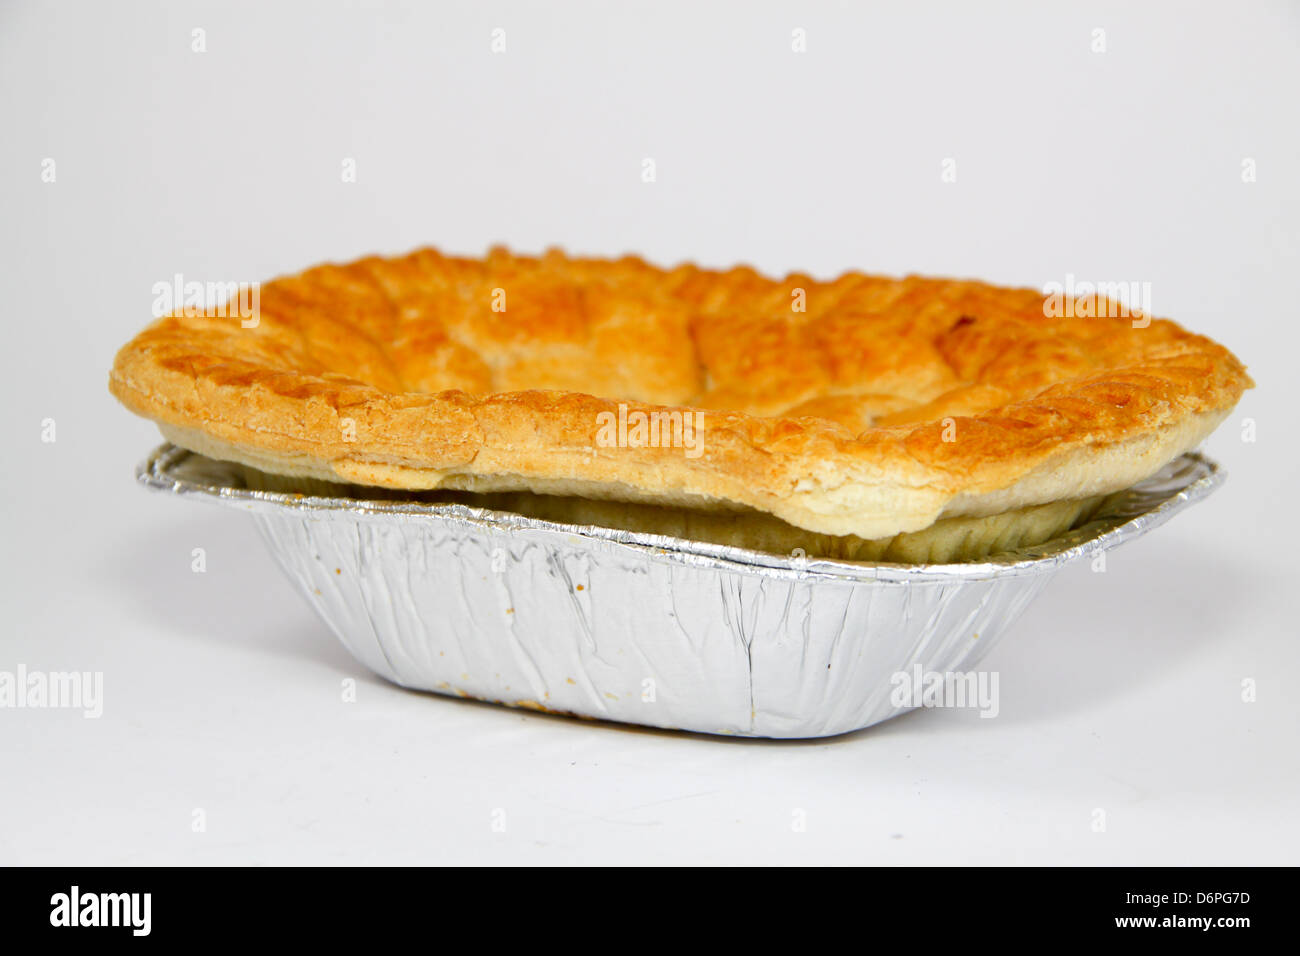 Uncooked shop bought steak pie - Stock Image